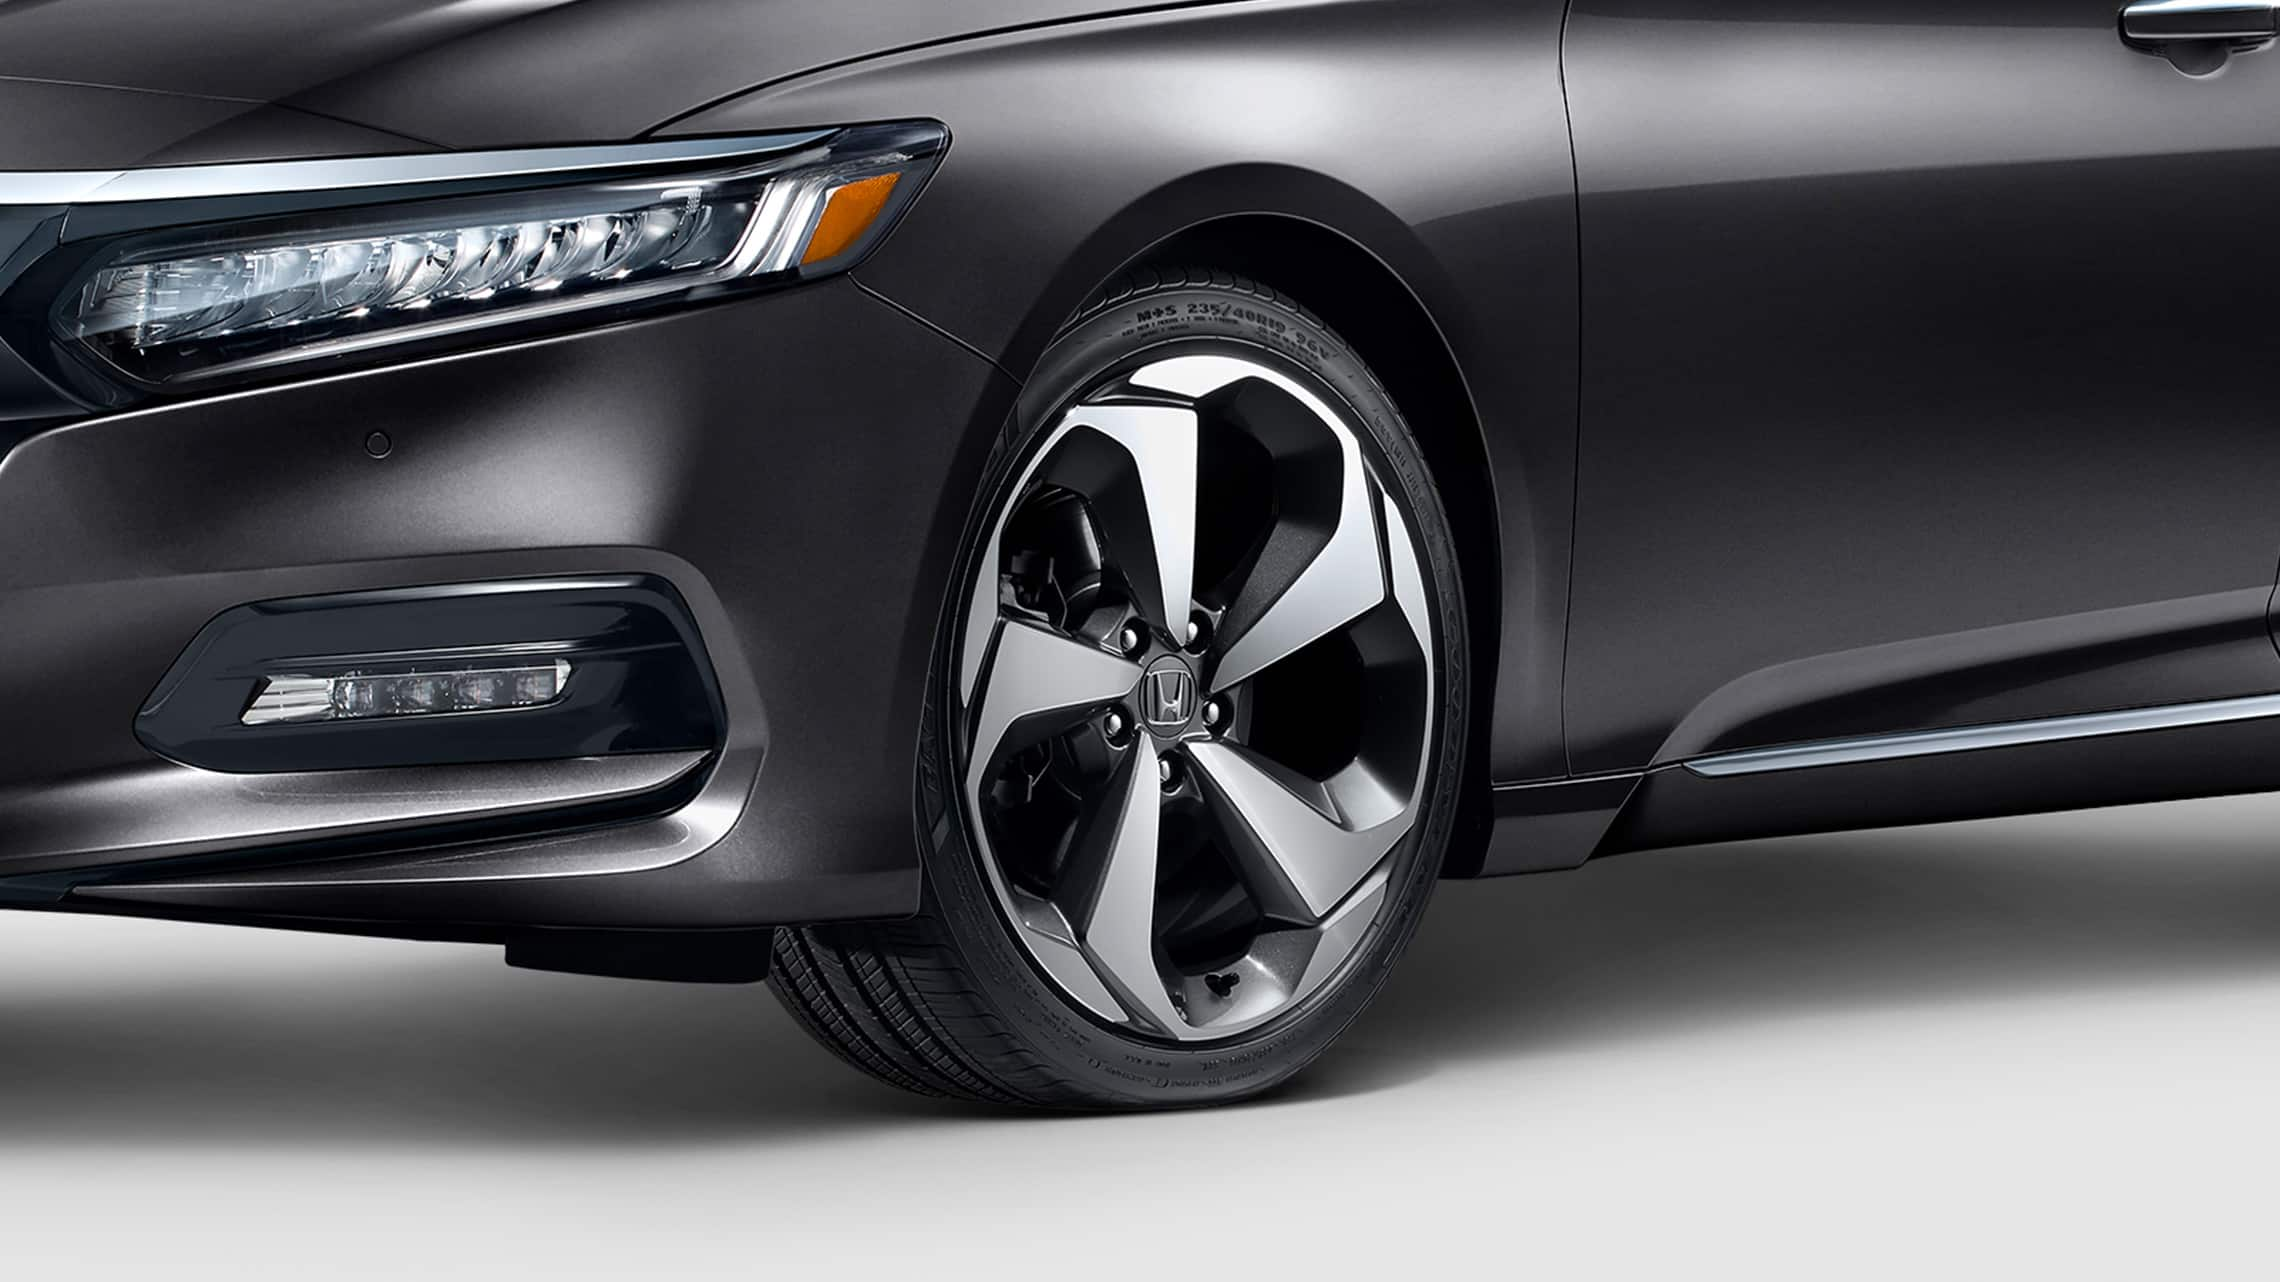 19-inch alloy wheel detail on the 2020 Honda Accord Touring 2.0T in Modern Steel Metallic.